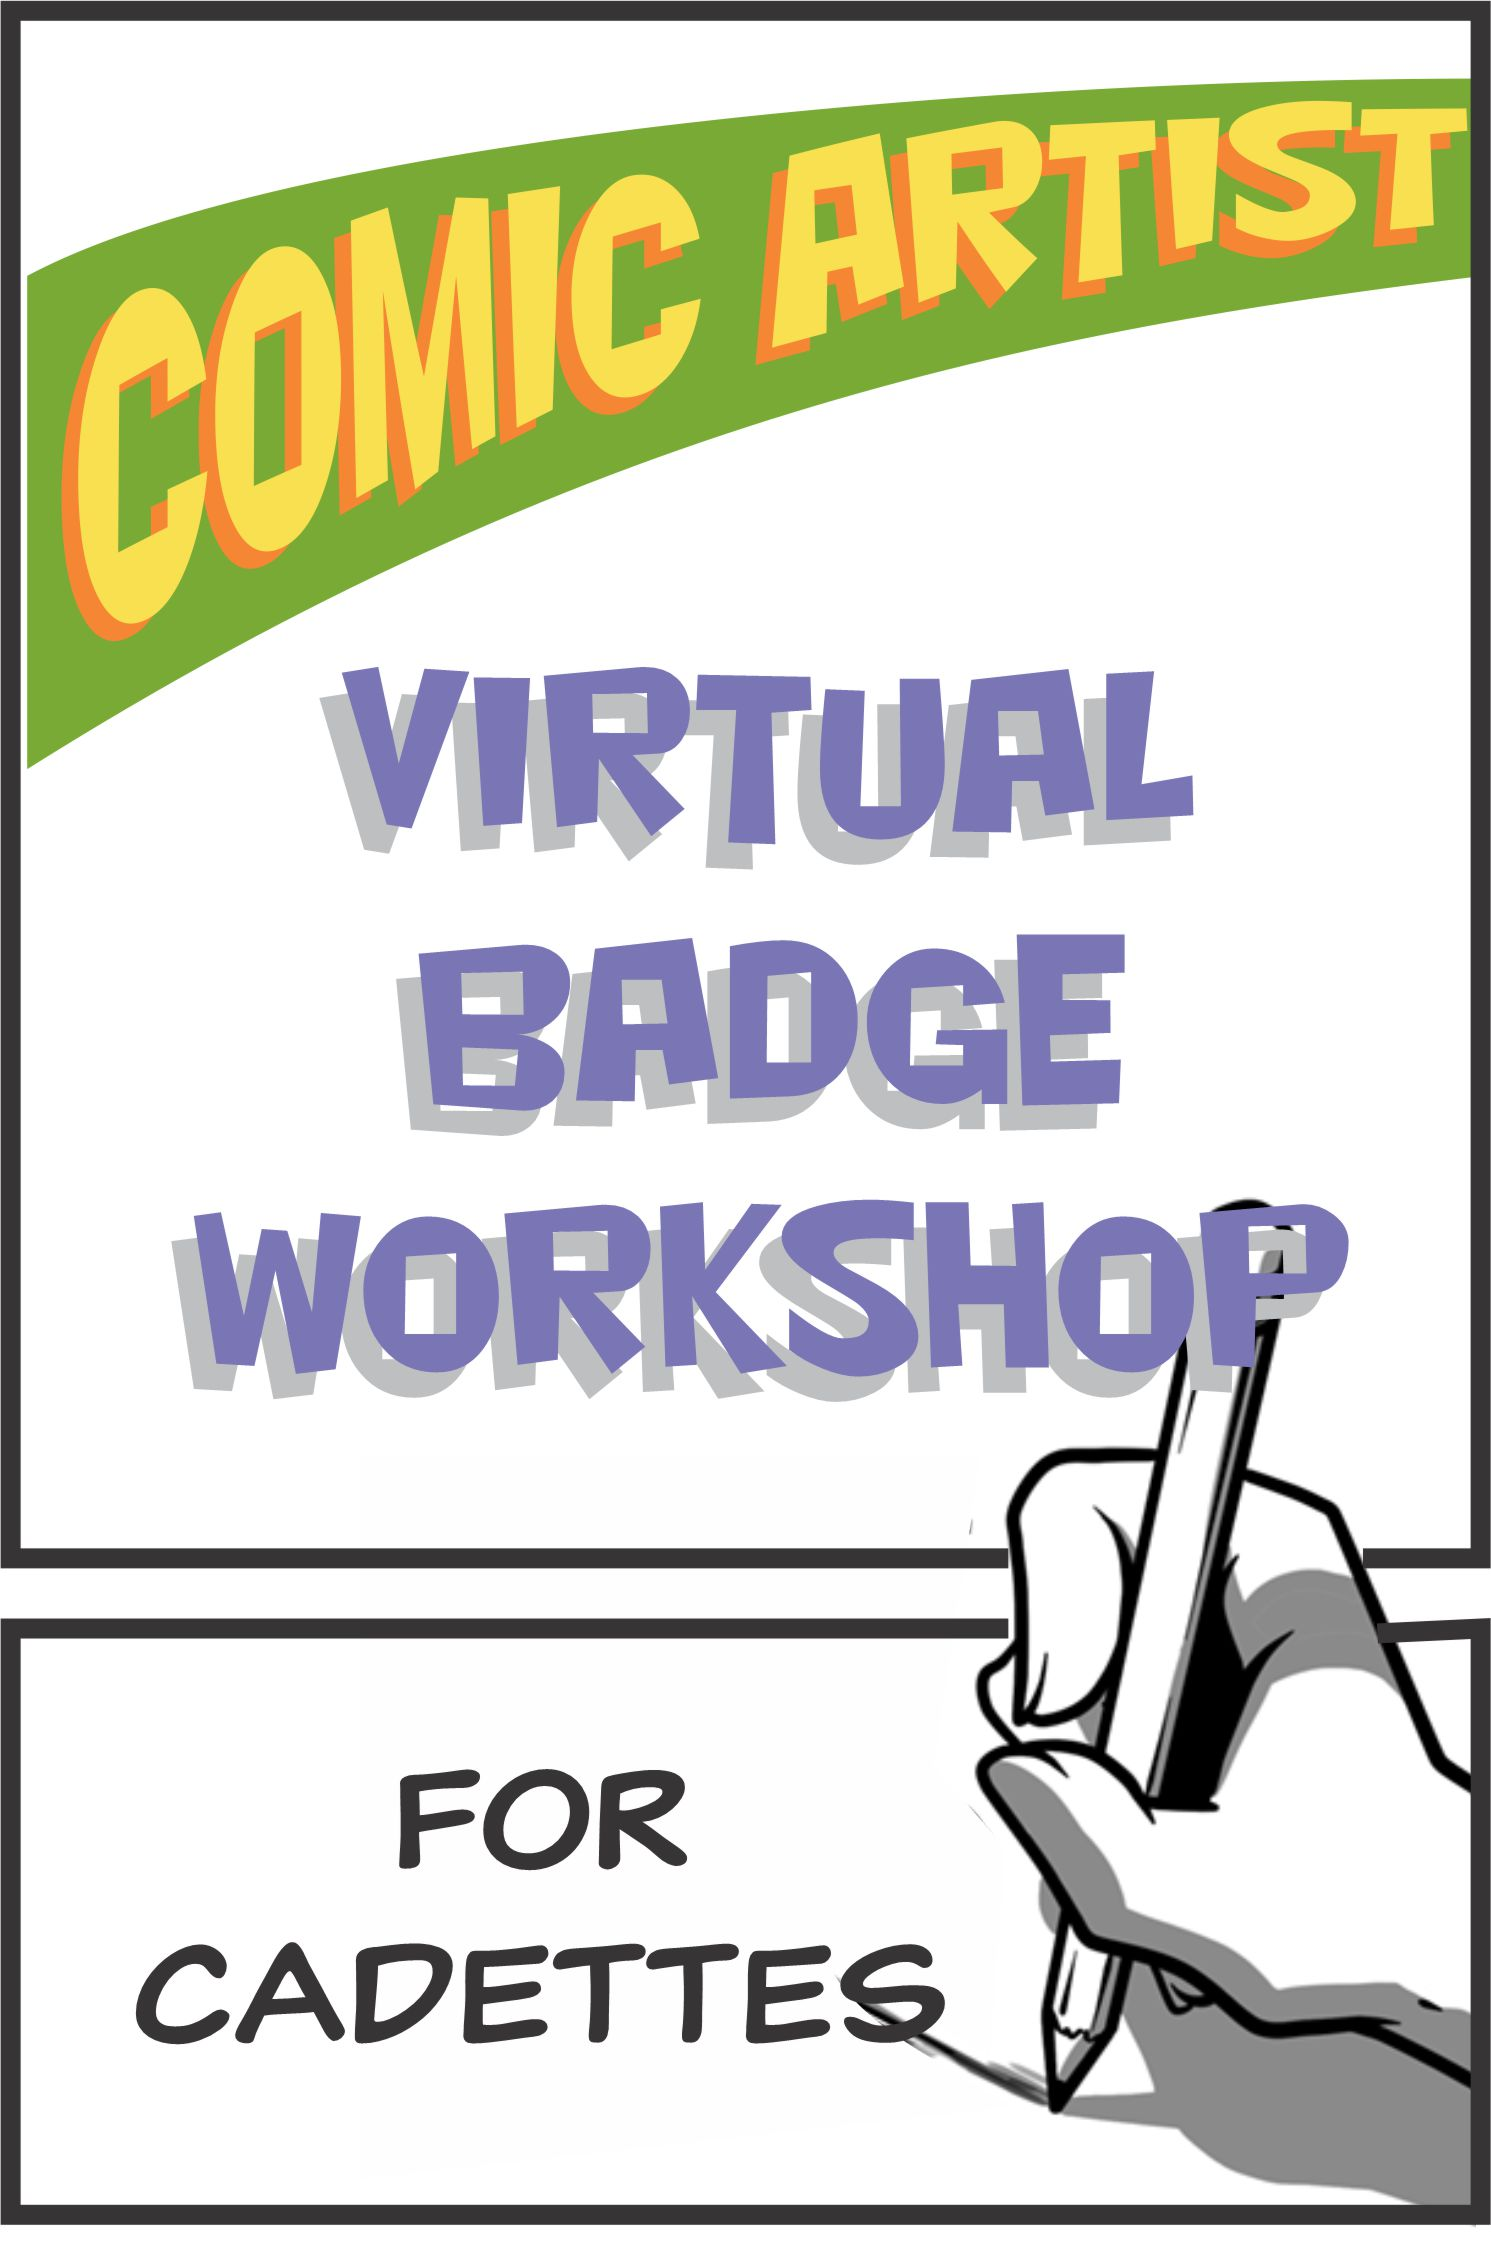 Join us for our Virtual Comic Artist Workshop! All girls that are interested in comic art ages 11 and up welcome! Professionally designed downloads!! #makingfriends #comicartist #comicartistbadge #virtualworkshop #girlscoutbadge #gsbadges #onlineclass via @gsleader411